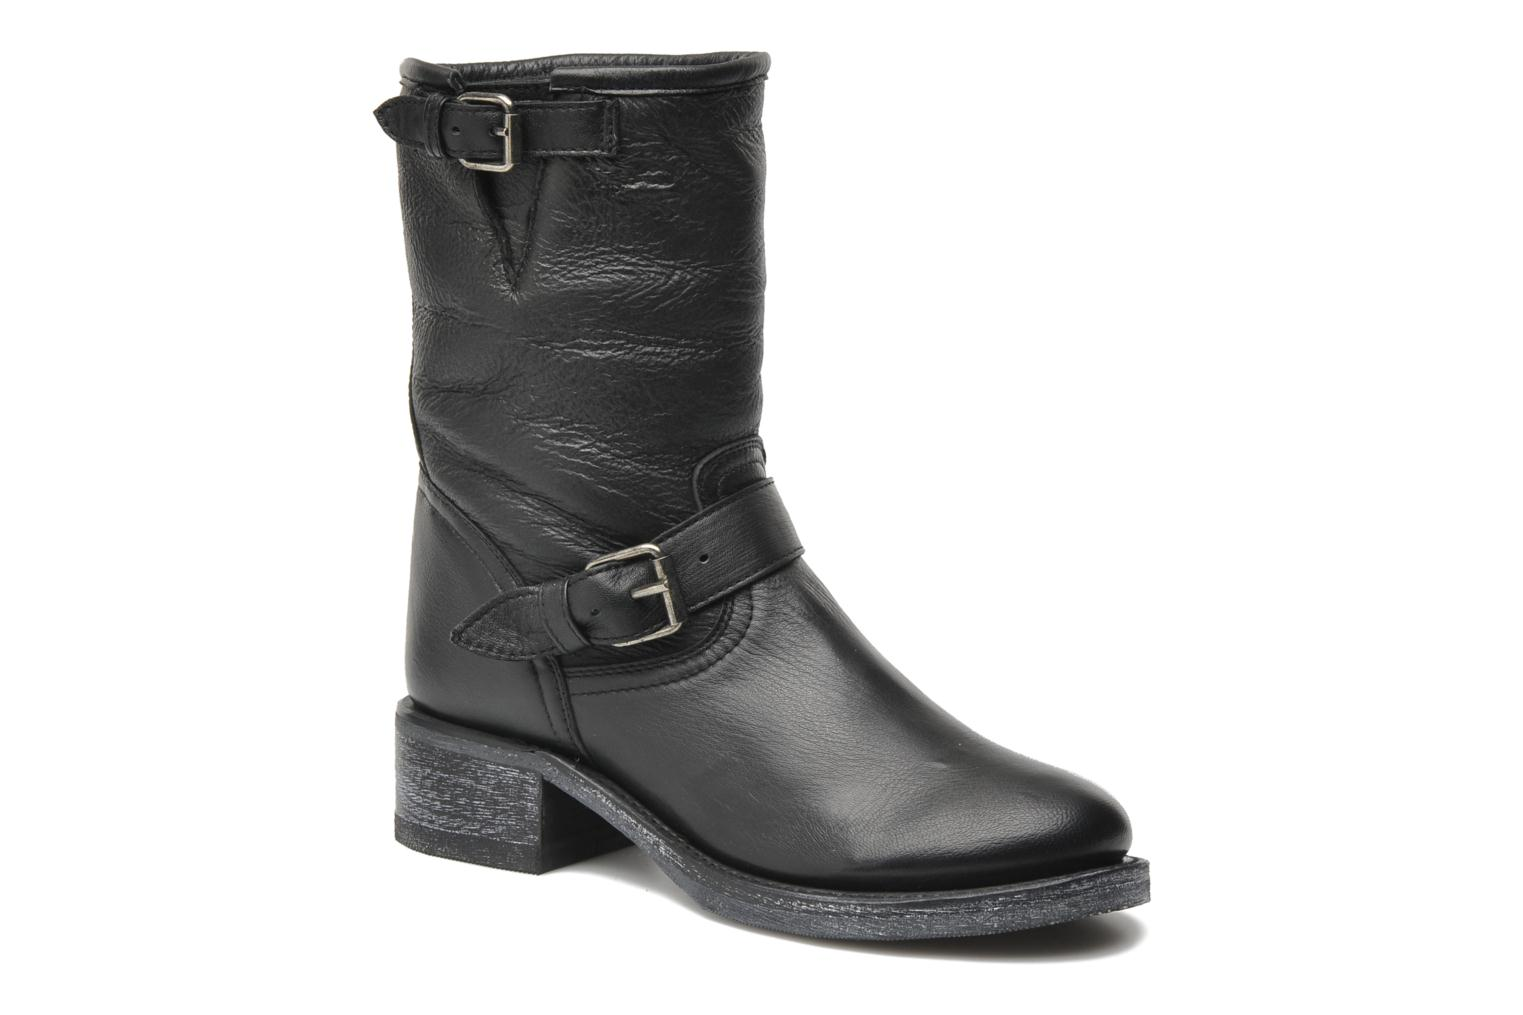 Boots en enkellaarsjes 1628 Sheep W2 by Schott